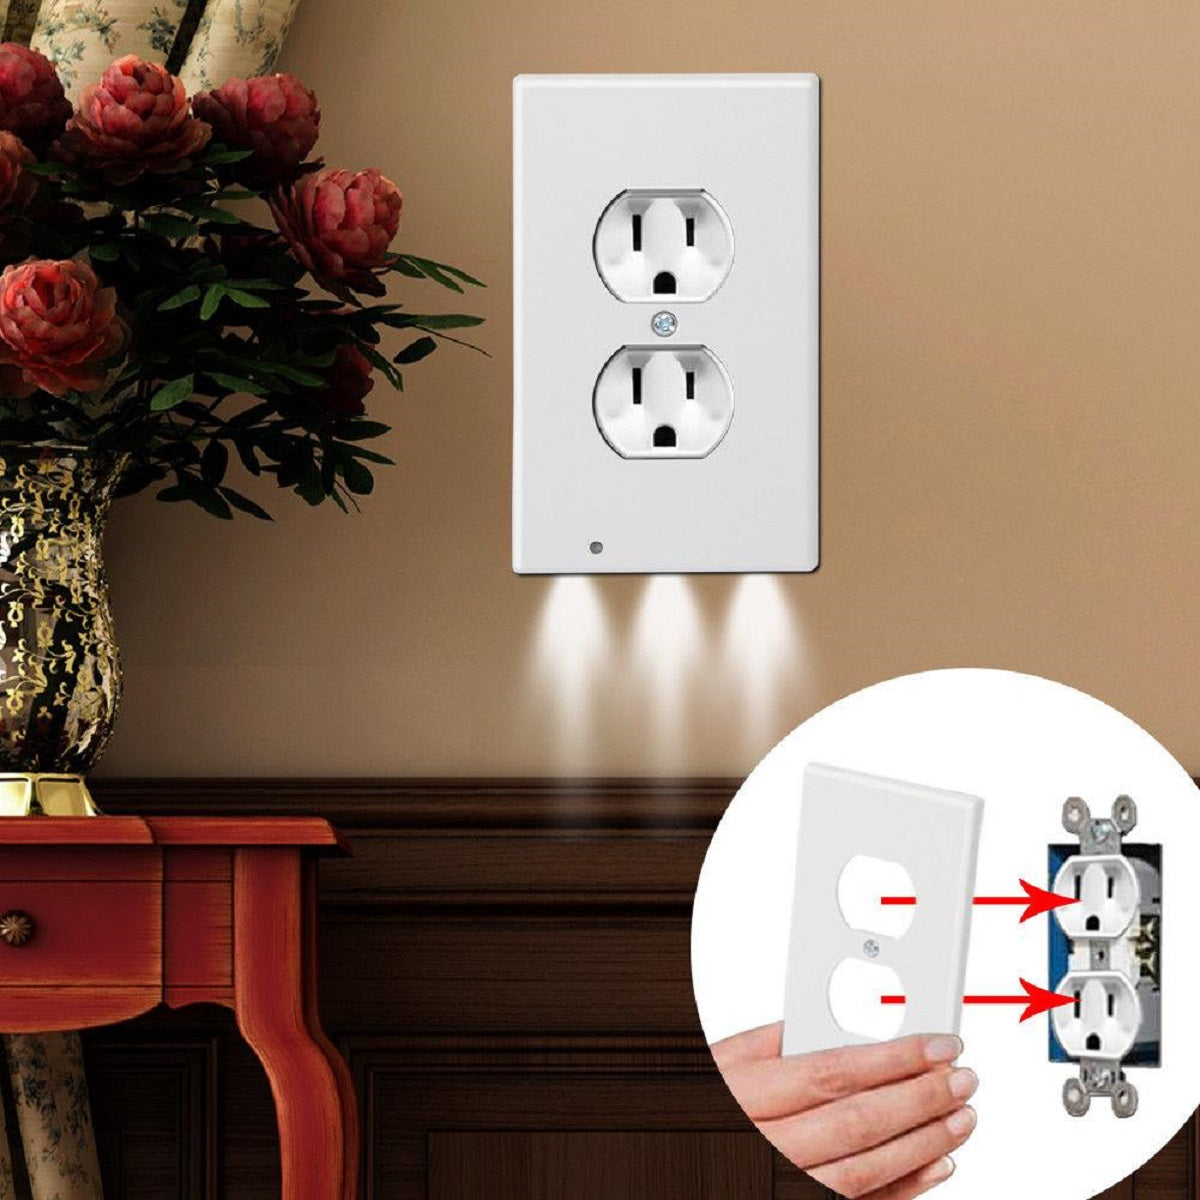 LED Night Light Outlet Cover